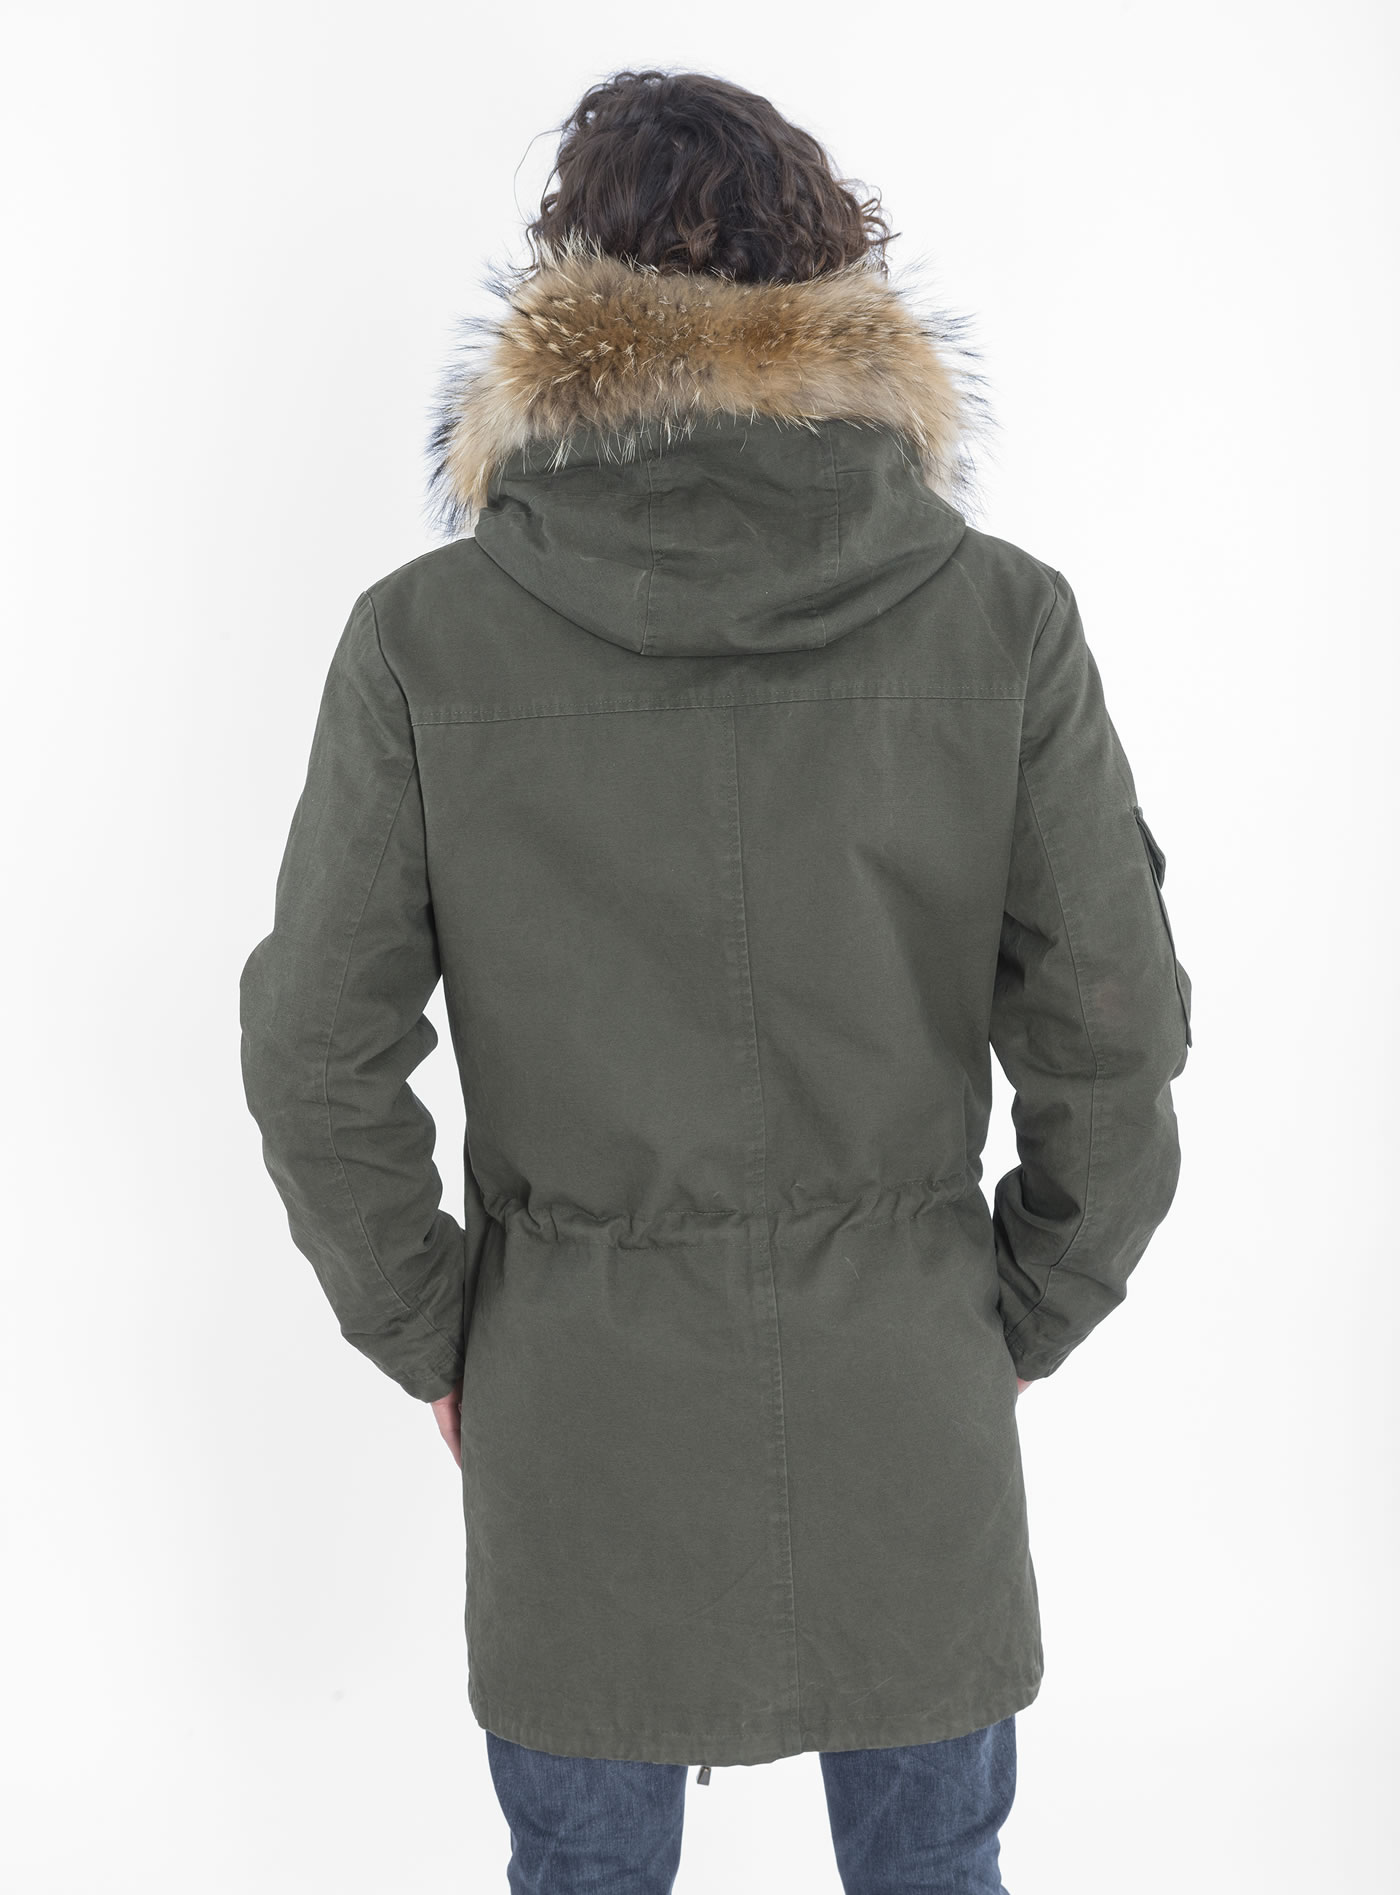 Men's parka with camouflage lining